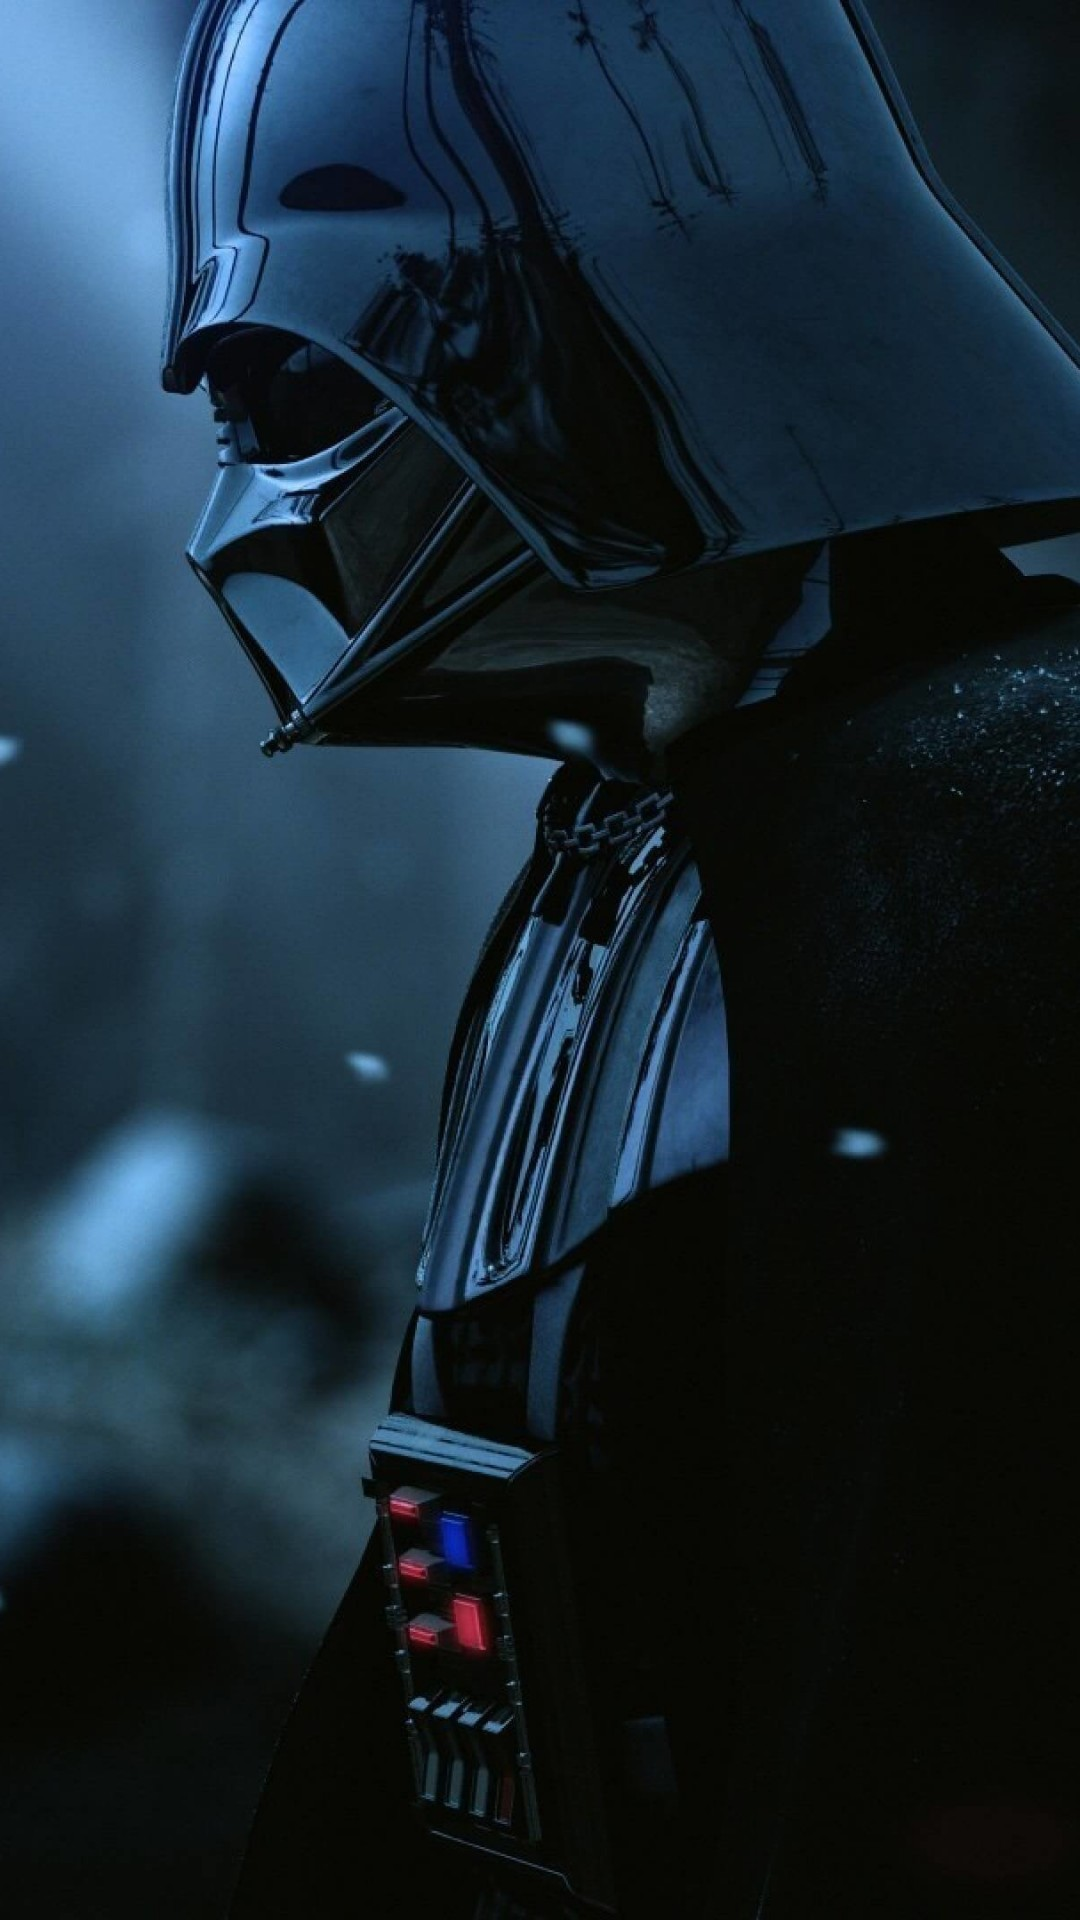 Darth Vader - The Force Unleashed 2 Wallpaper for SAMSUNG Galaxy Note 3